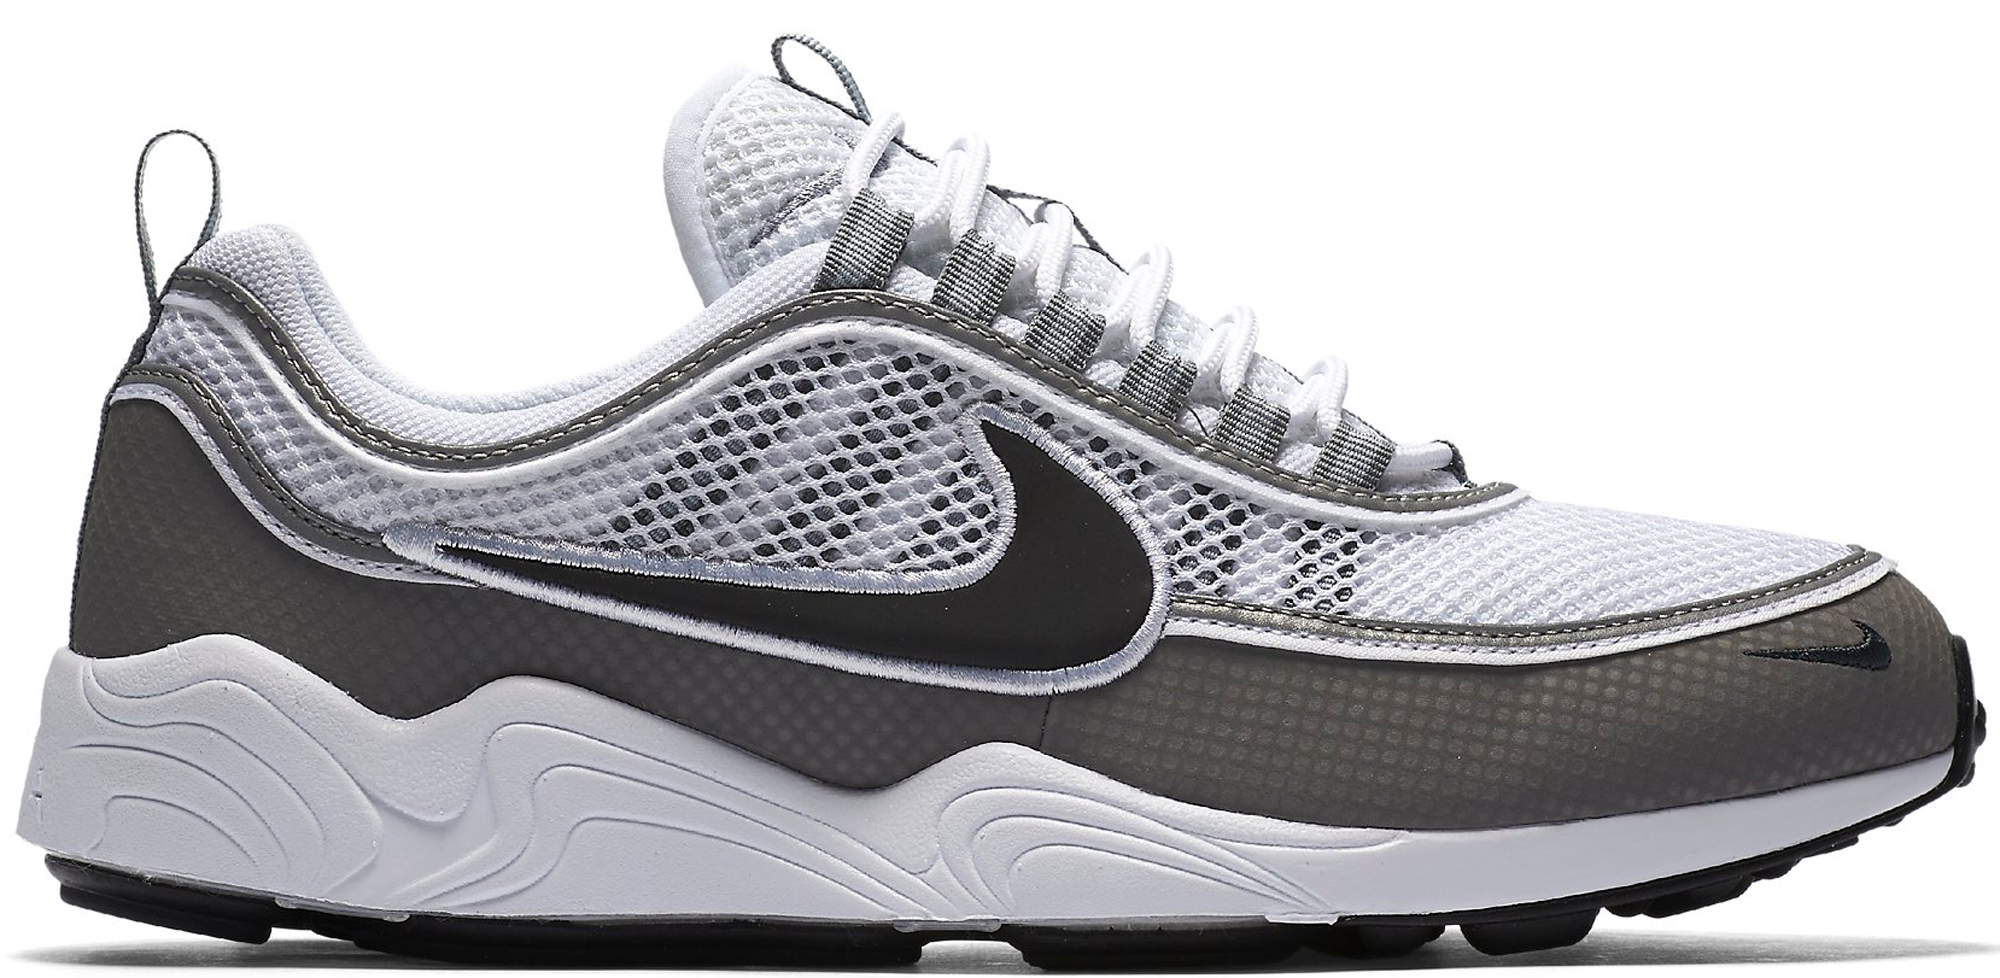 nike air zoom spiridon white ash. Black Bedroom Furniture Sets. Home Design Ideas